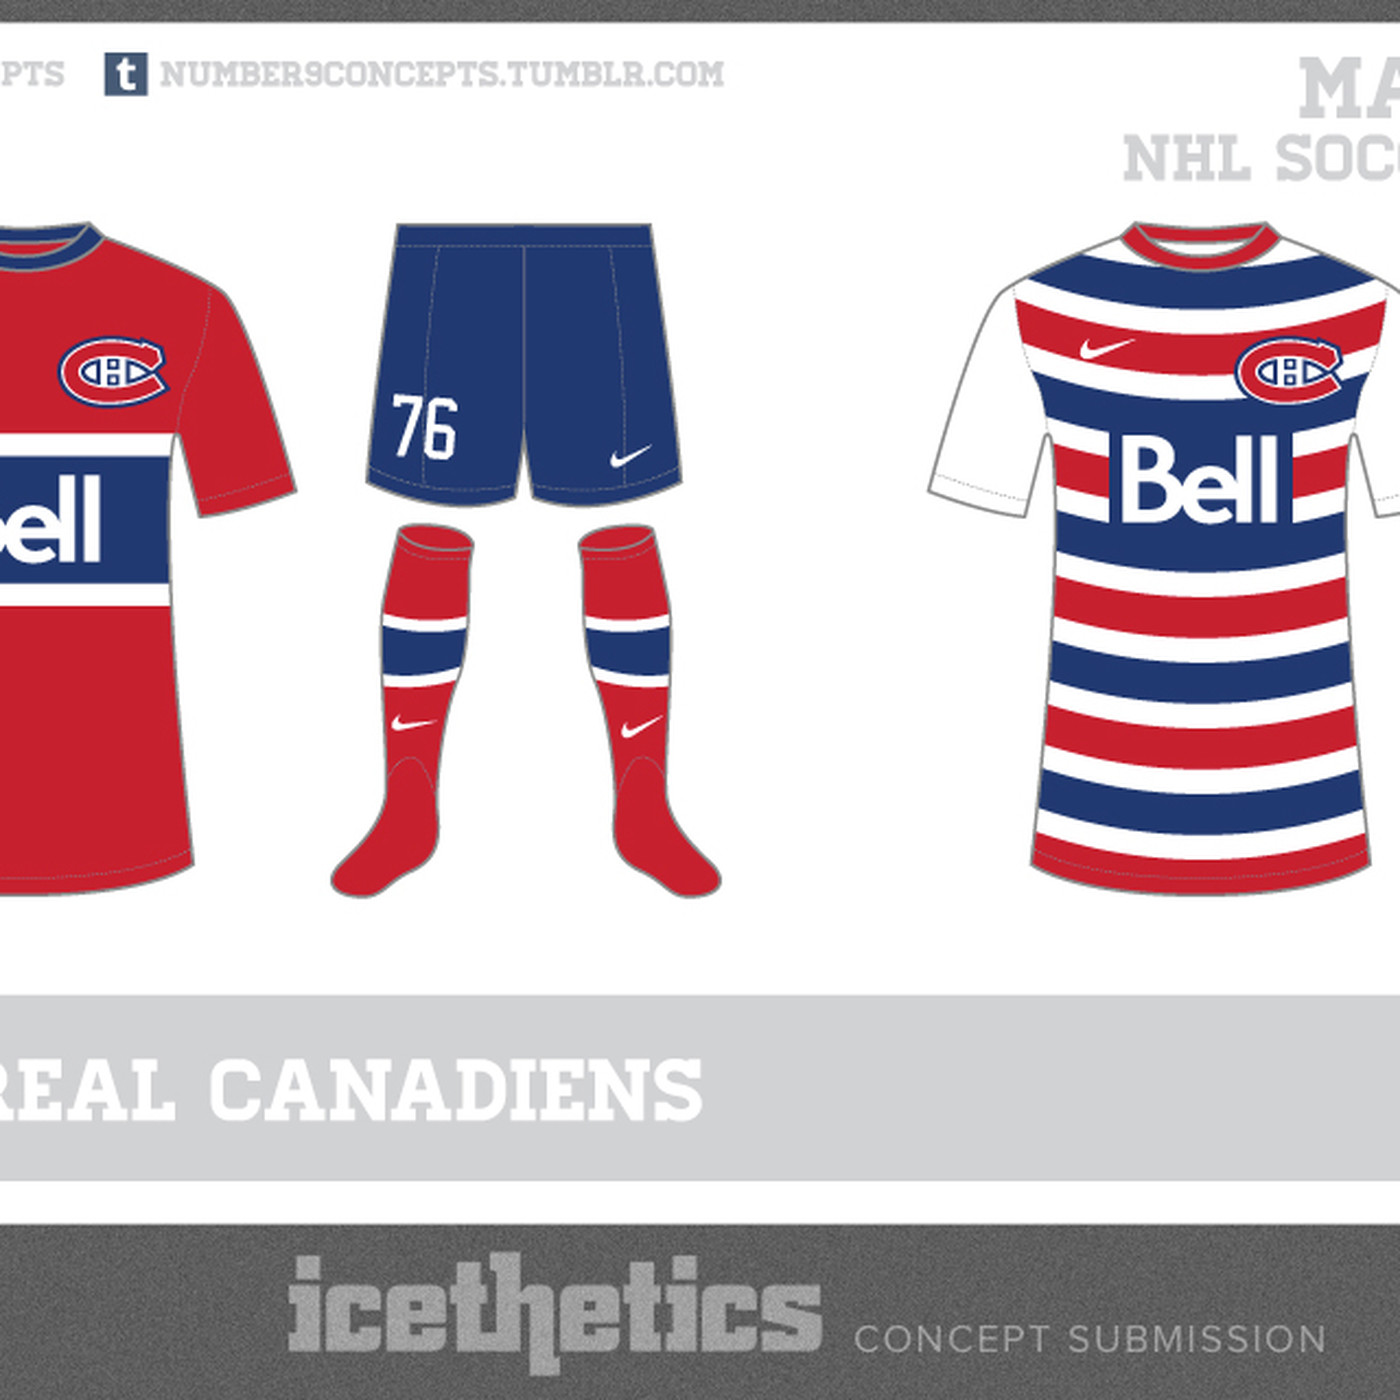 4ff6999f8 Would you wear a Canadiens soccer kit  - Eyes On The Prize